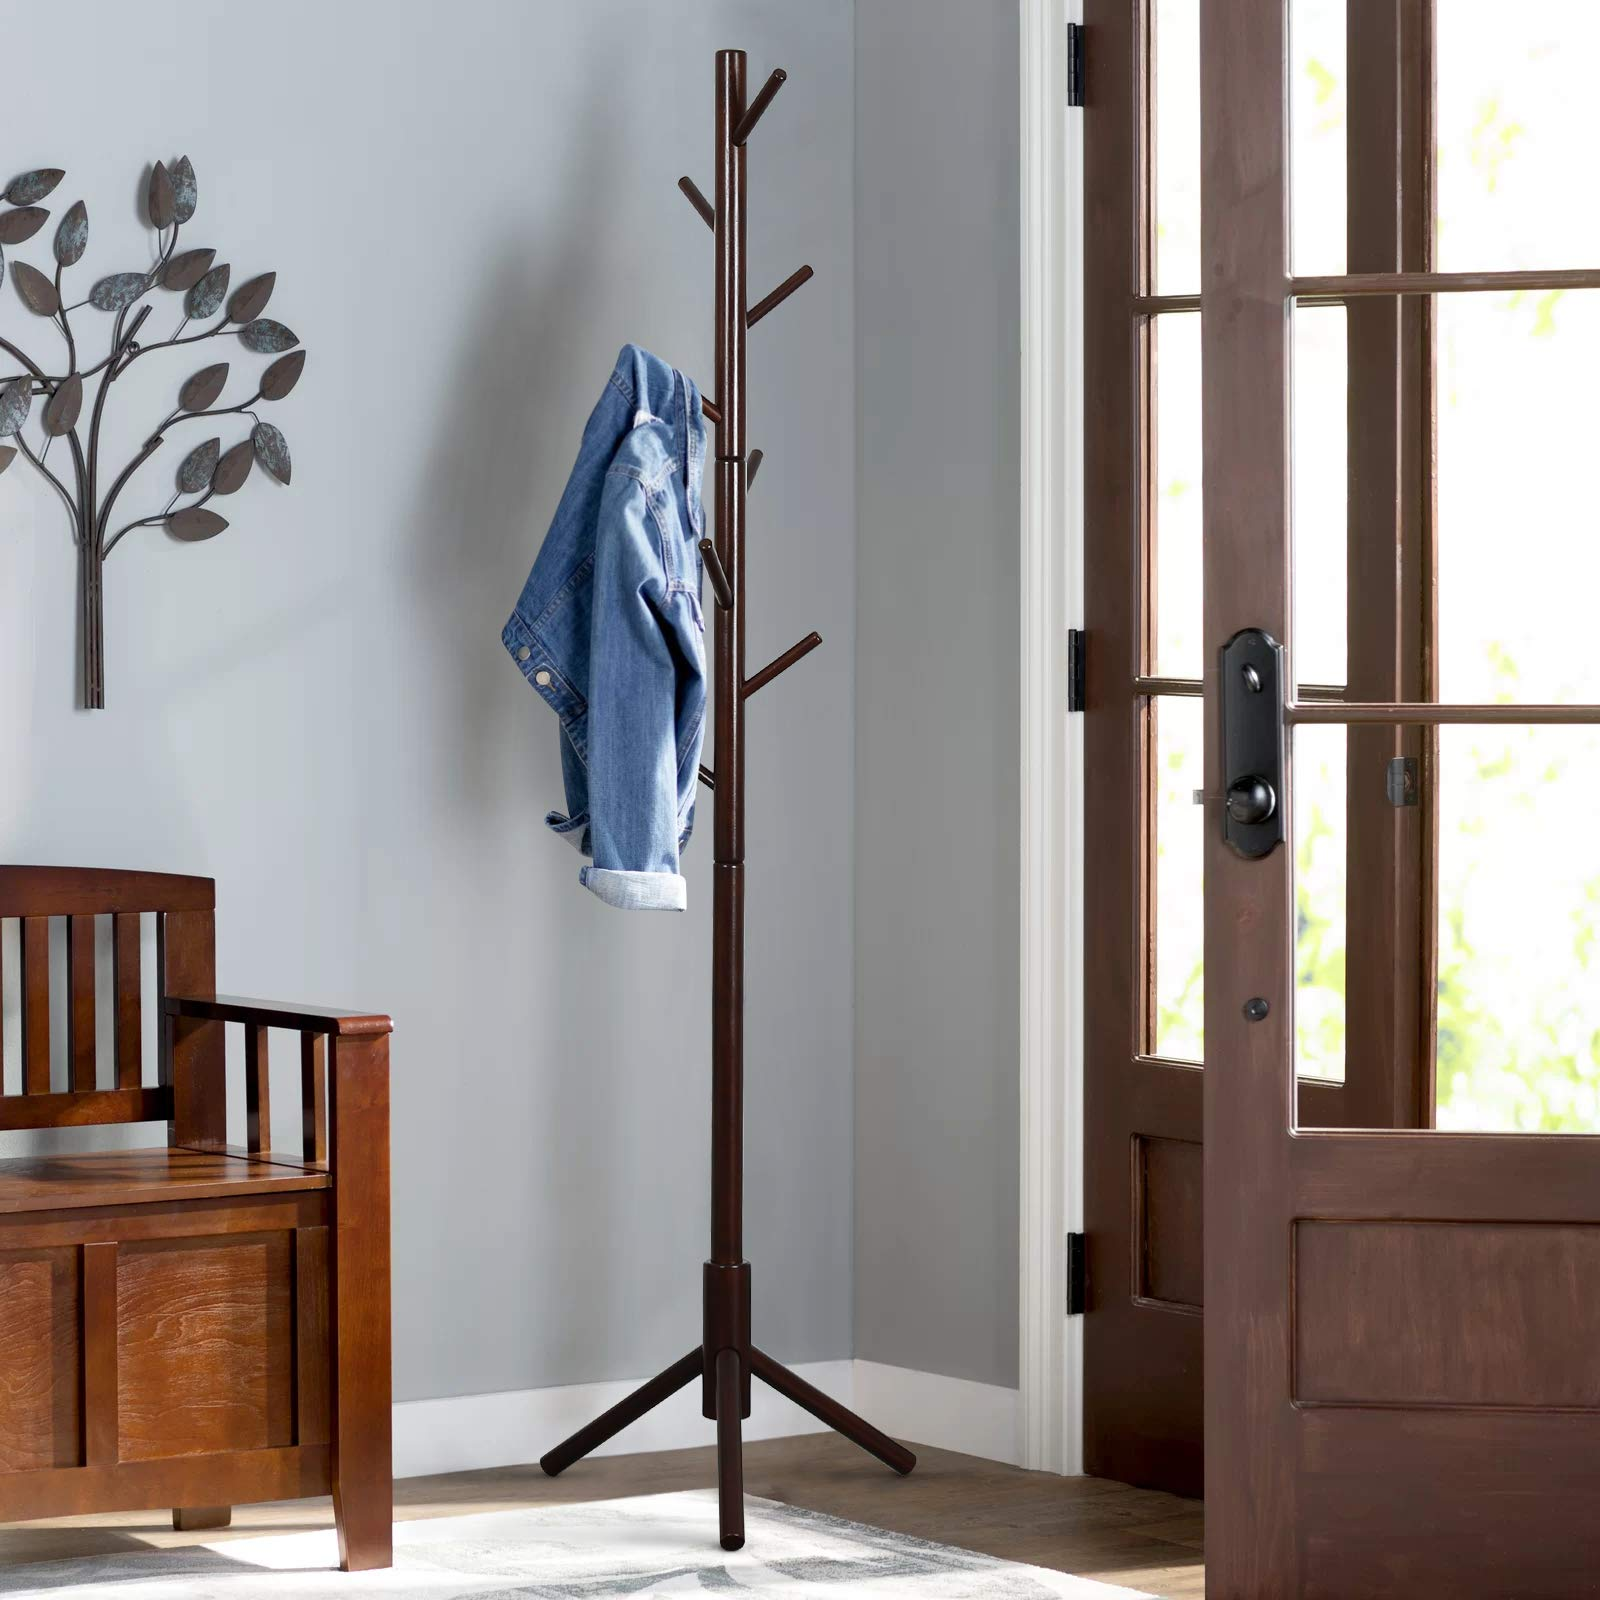 Vlush Sturdy Wooden Coat Rack Stand, Entryway Hall Tree Coat Tree with Solid Base for Hat,Clothes,Purse,Scarves,Handbags,Umbrella-(8 Hooks,Brown) by Vlush